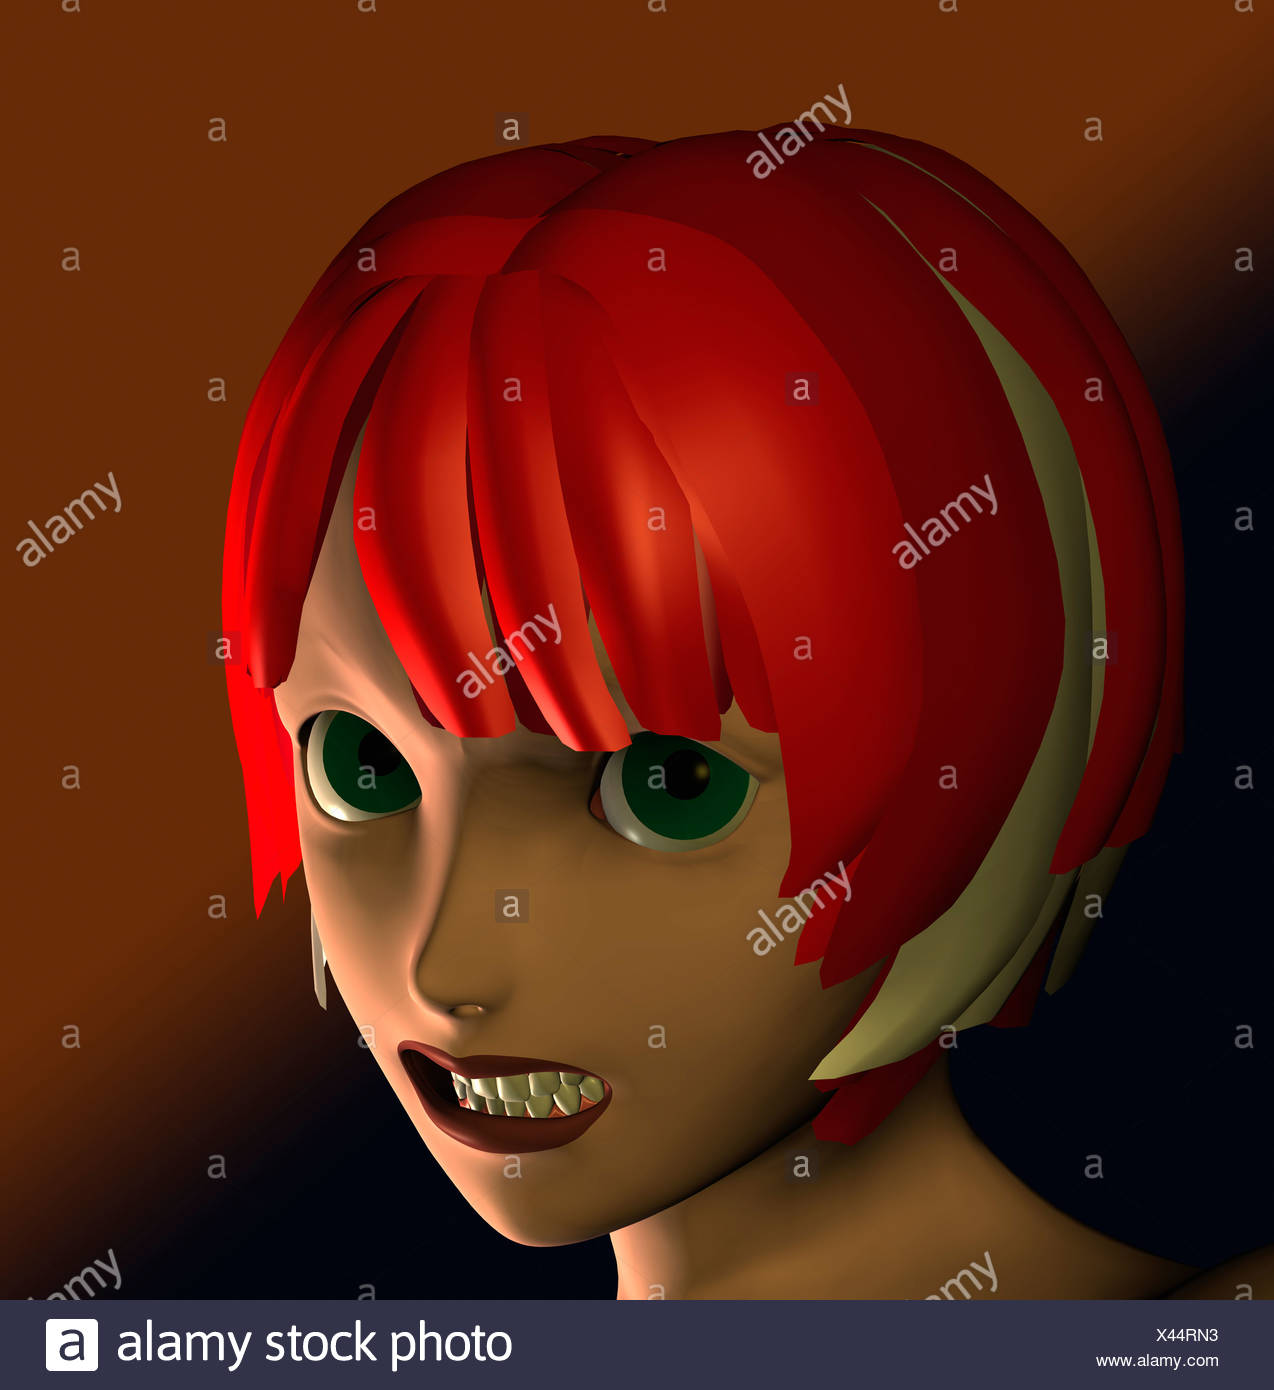 Computer Illustration Of Young Woman Looking Angry - Stock Image